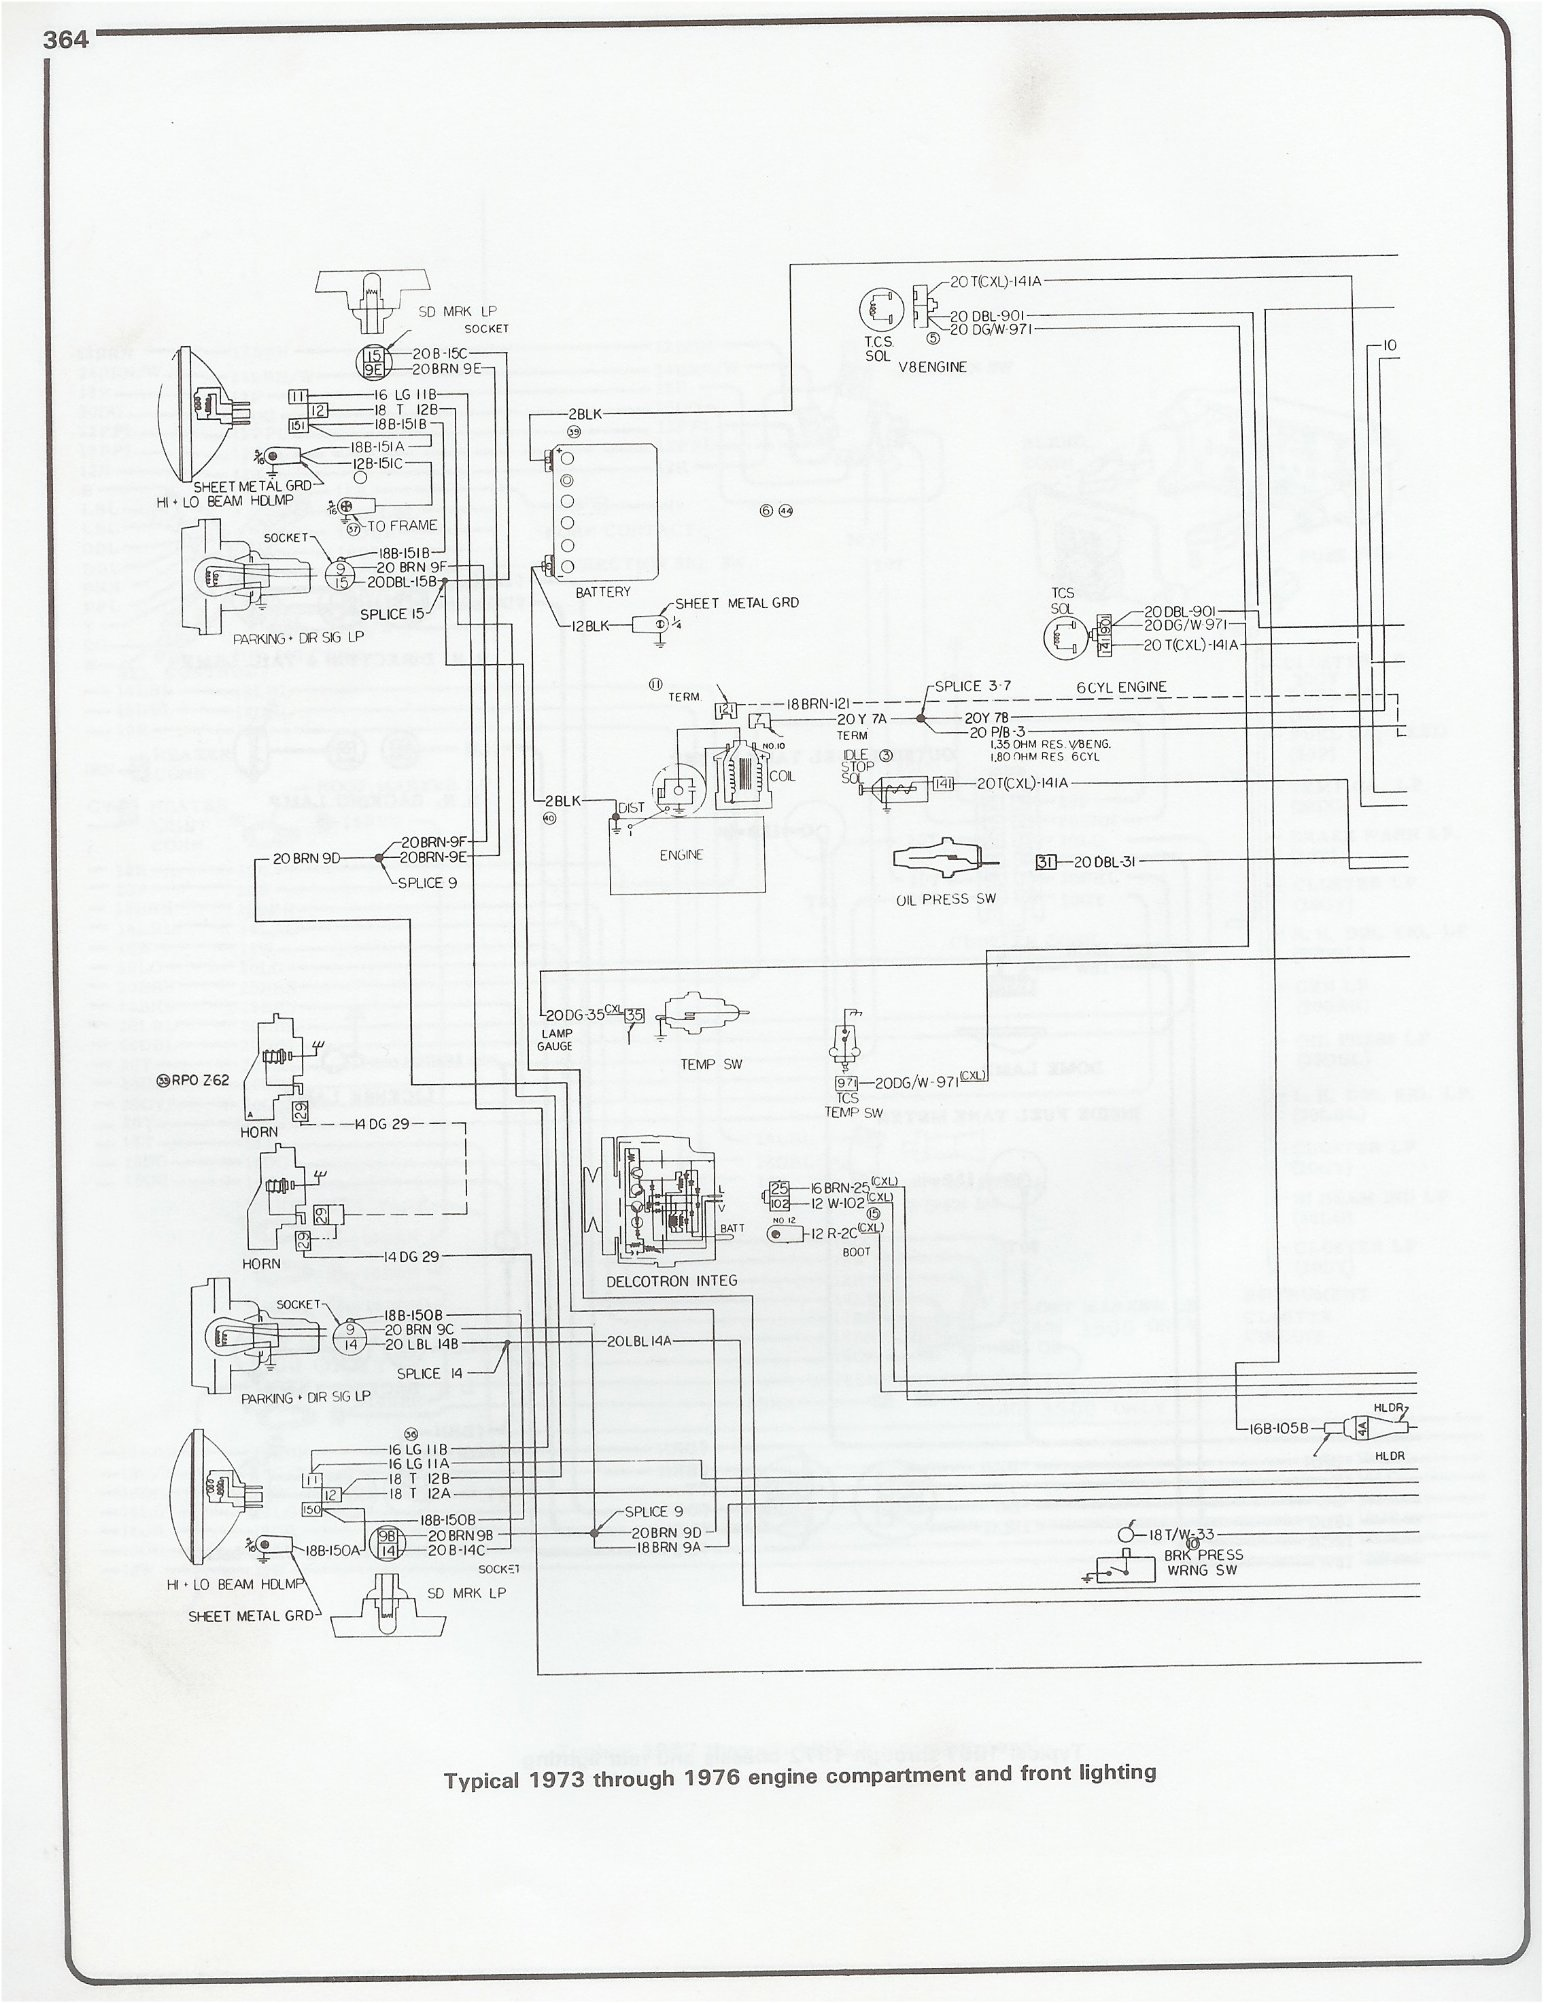 Complete 73-87 Wiring Diagrams on 1977 chevrolet truck parts diagram, 1994 chevrolet caprice electrical diagram, chevy truck vacuum diagram, chevy truck wiring schematics, 2008 chevy truck headlight diagram, 1966 chevy truck ignition switch diagram, gm distributor diagram, 94 2500 headlamp diagram,